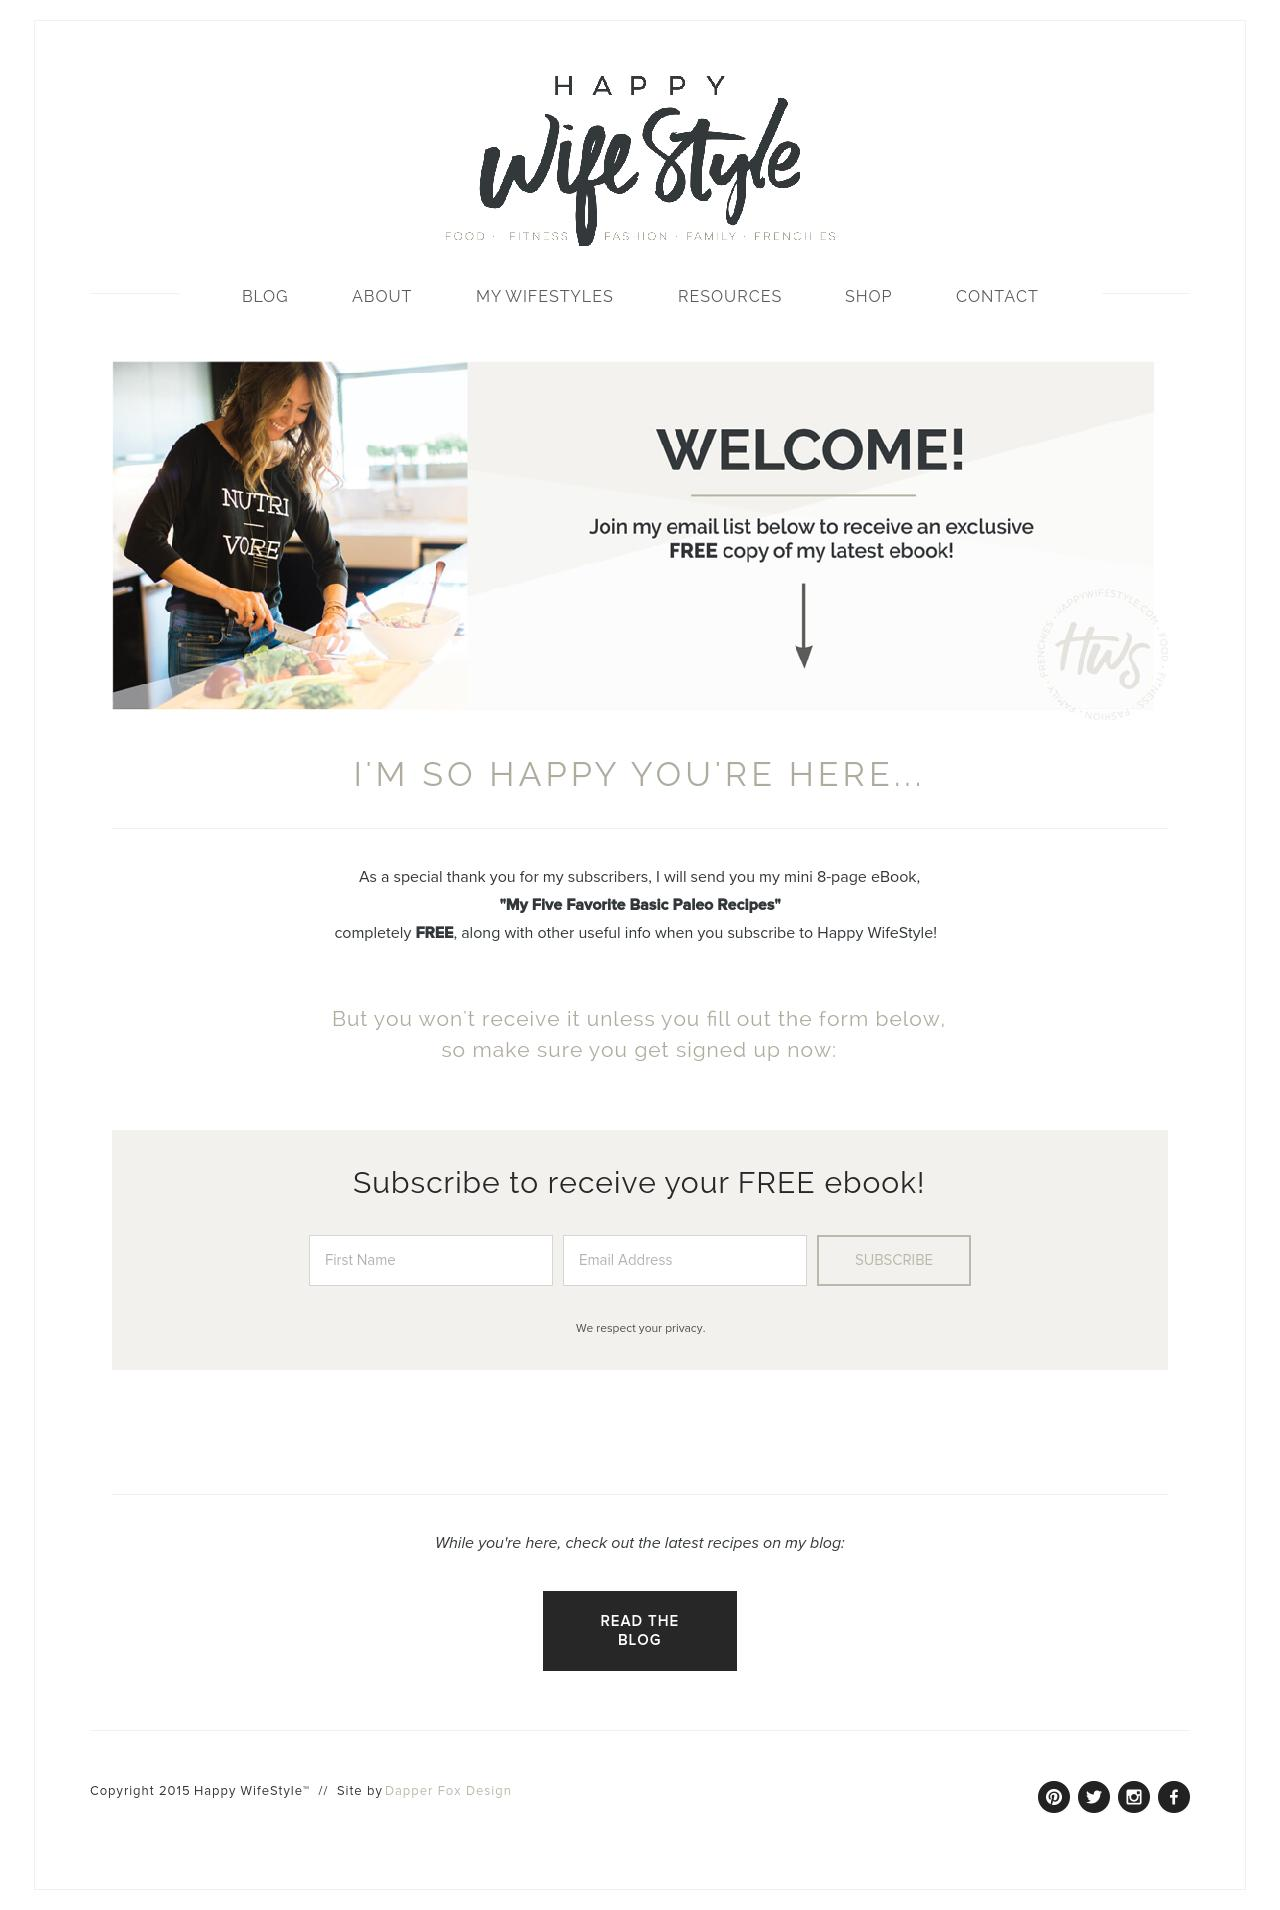 Happy WifeStyle Blog Design by Dapper Fox - Modern and clean website and brand design